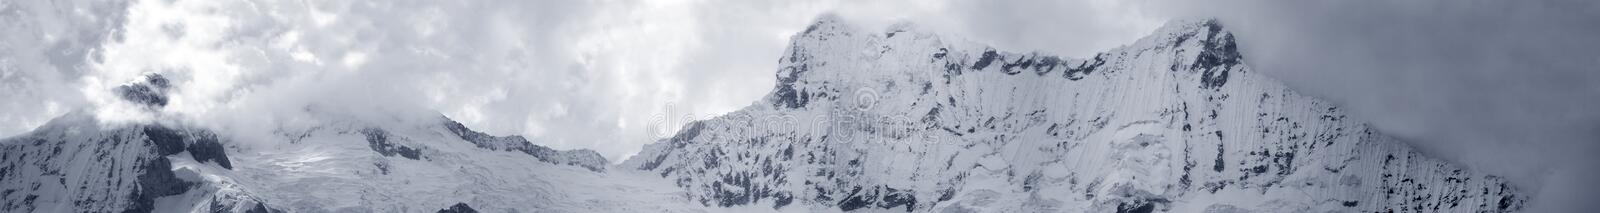 Mega Panoramic View Of Central Cordiliera Blanca Royalty Free Stock Photos